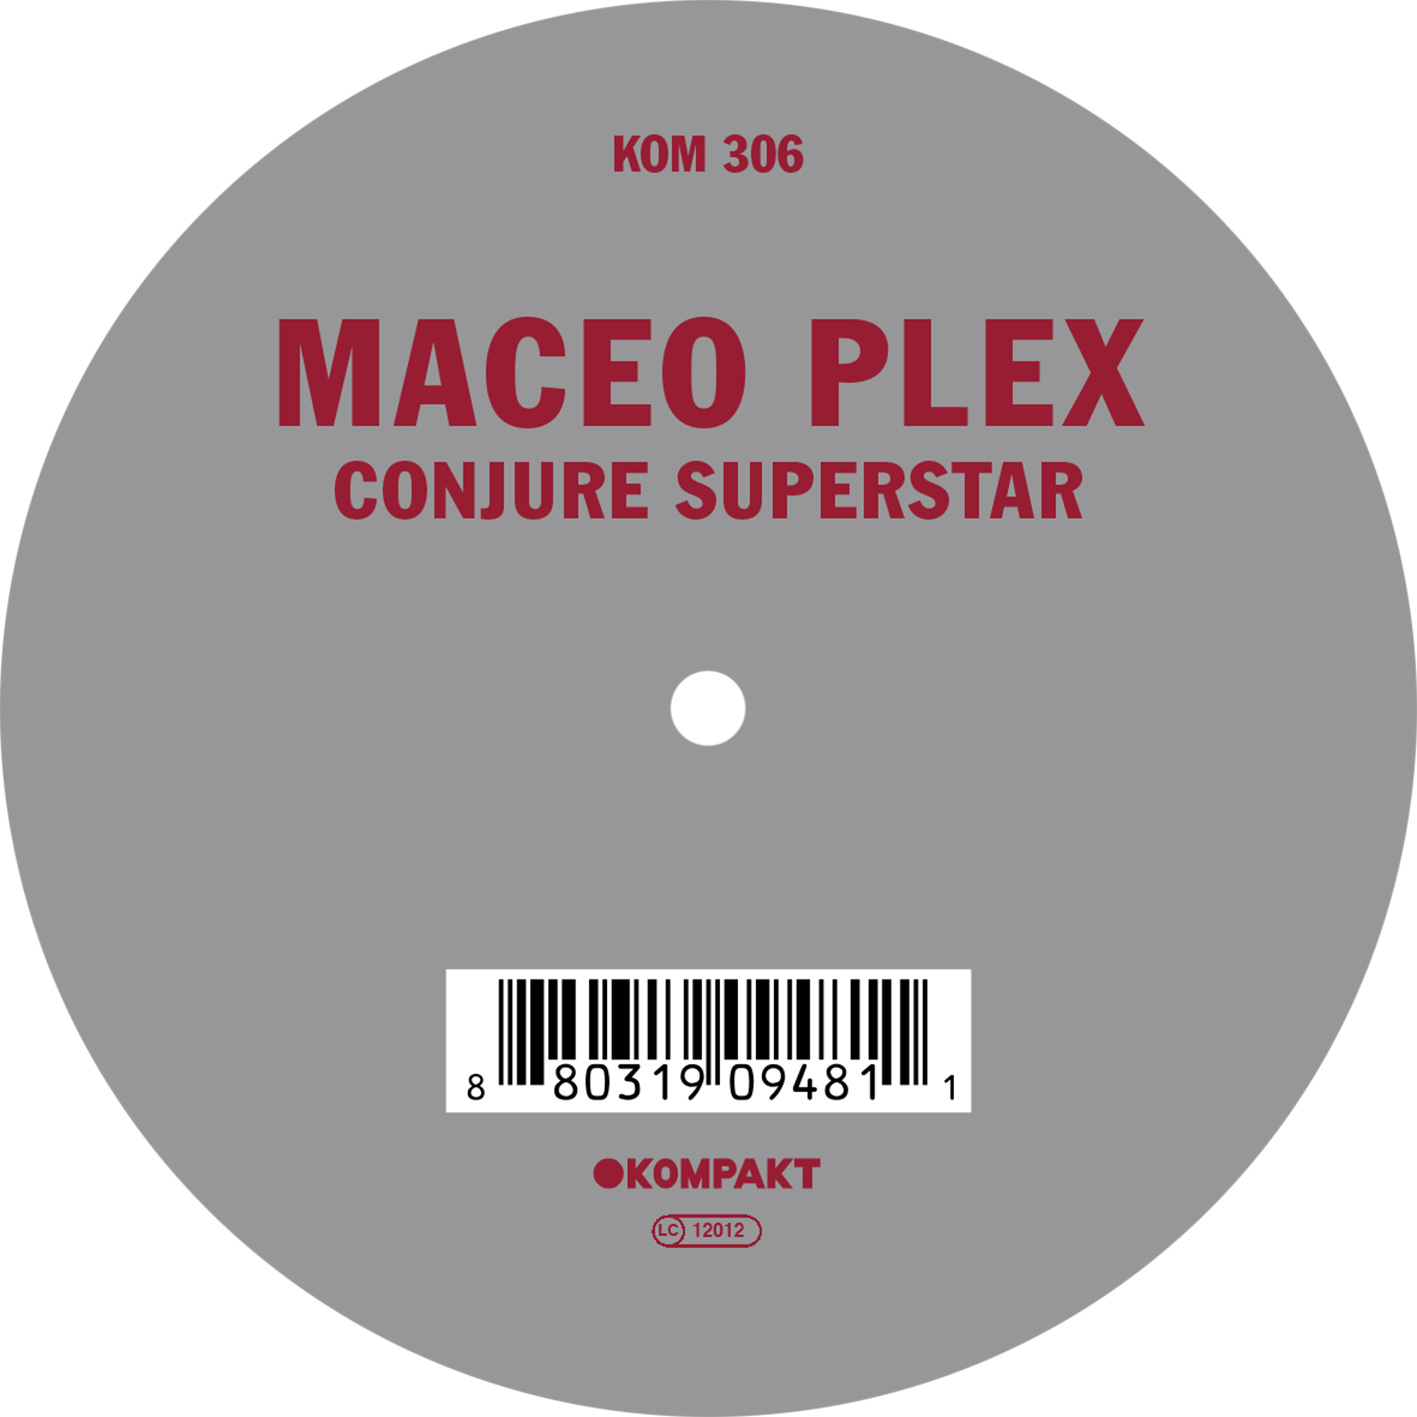 Maceo Plex - Conjure superstar